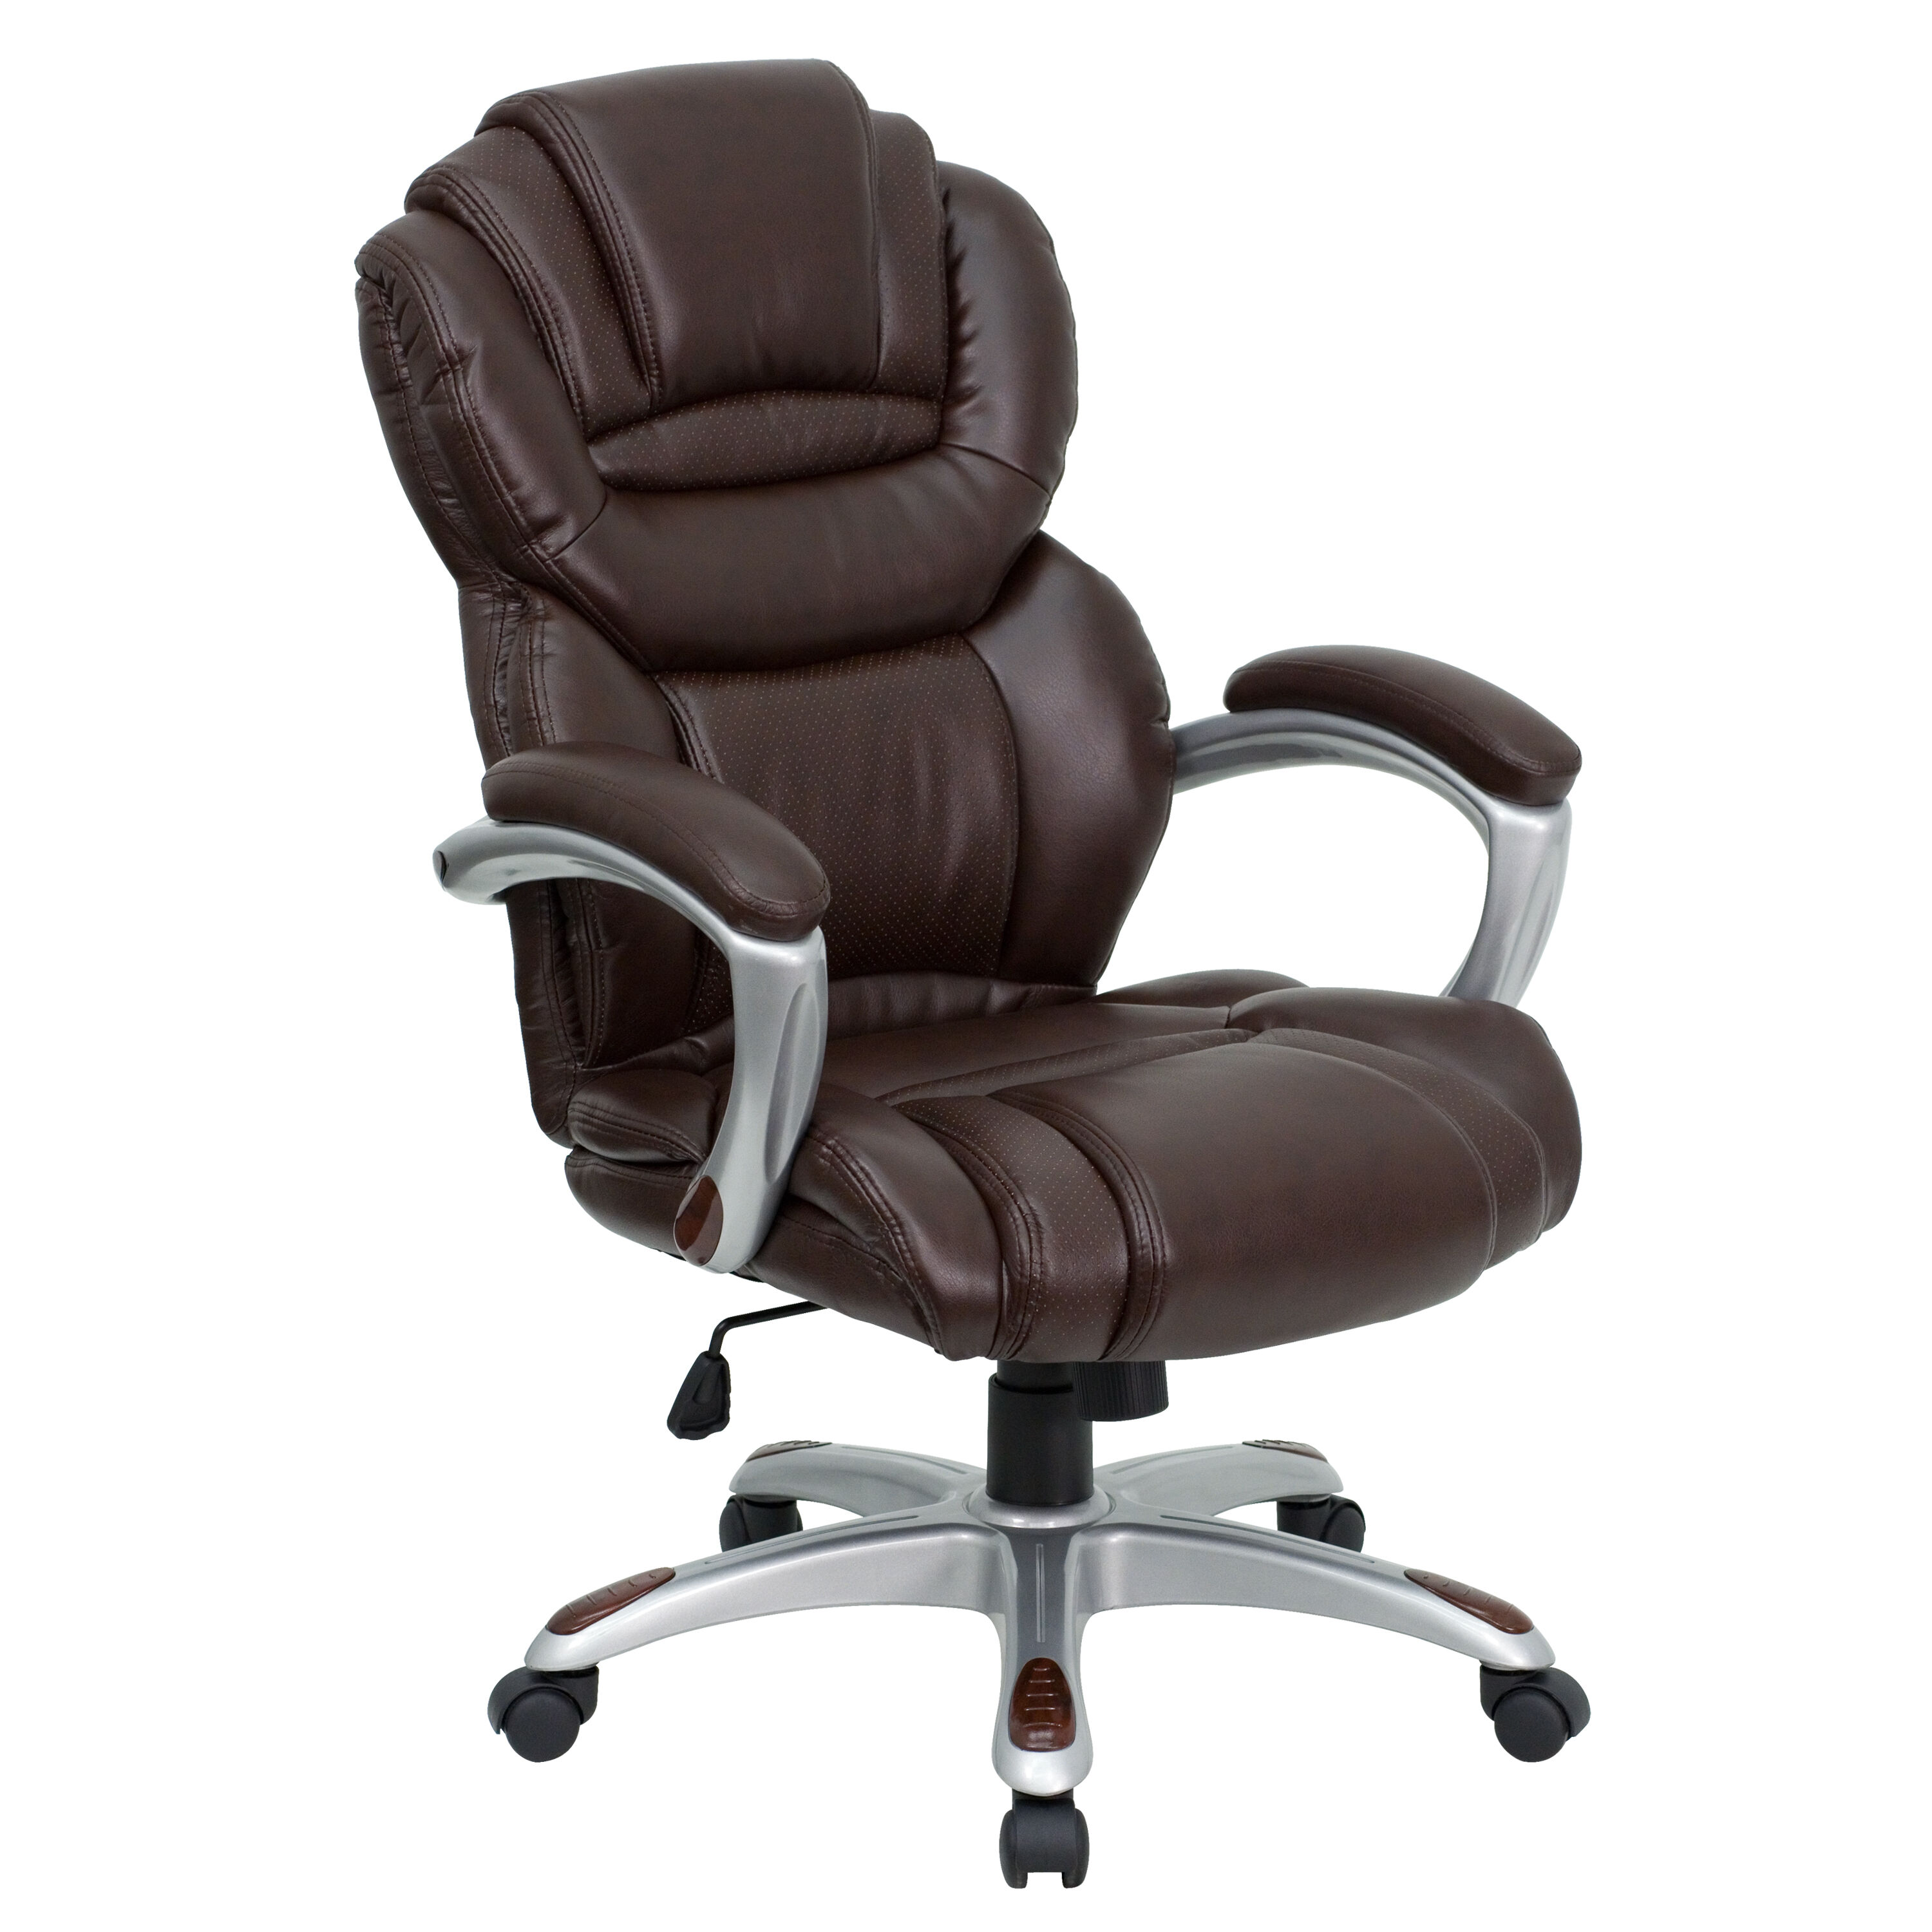 Awesome High Back Brown Leather Executive Swivel Chair With Arms